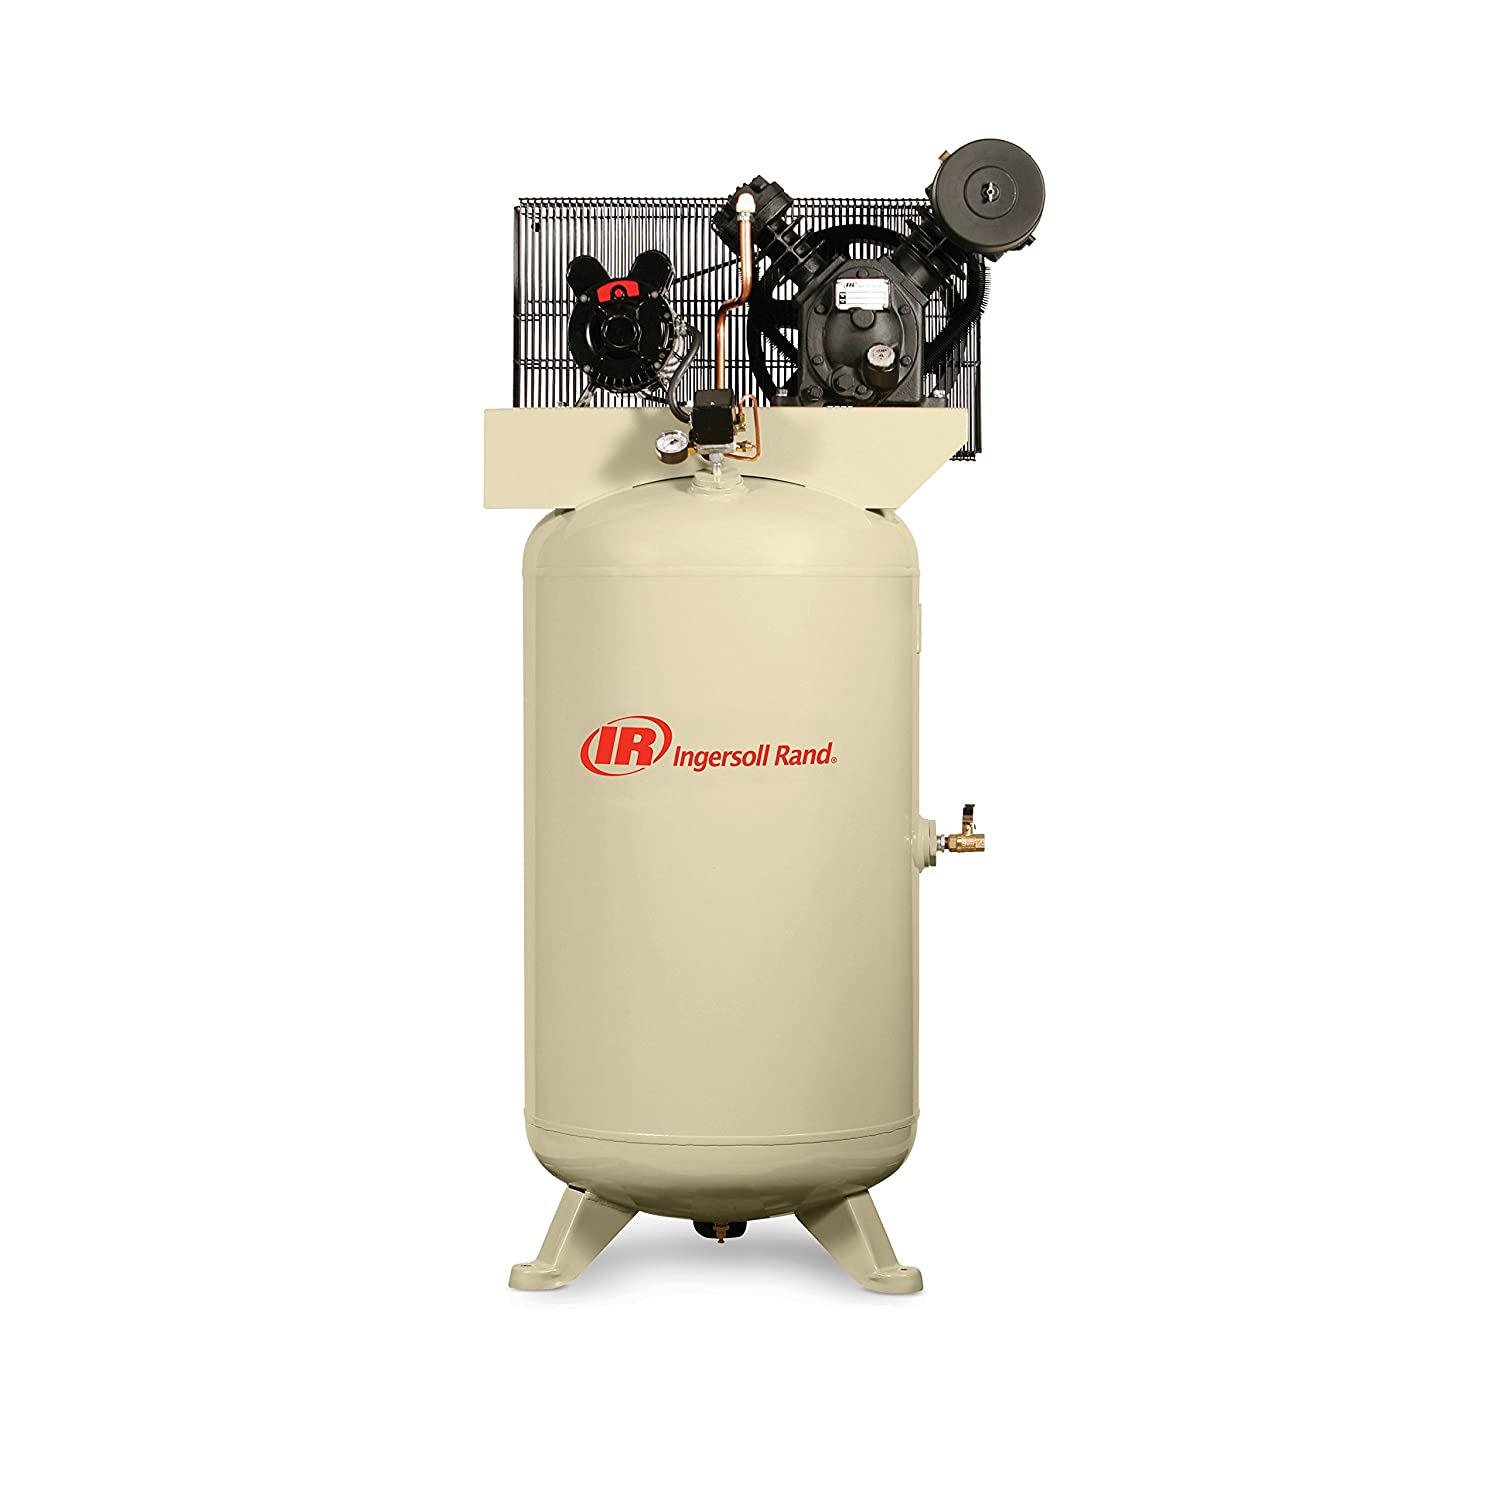 Ingersoll Rand 45464989 2340N5 5Hp Single 230 V Phase 2-Stage Air Compressor  - - Amazon.com